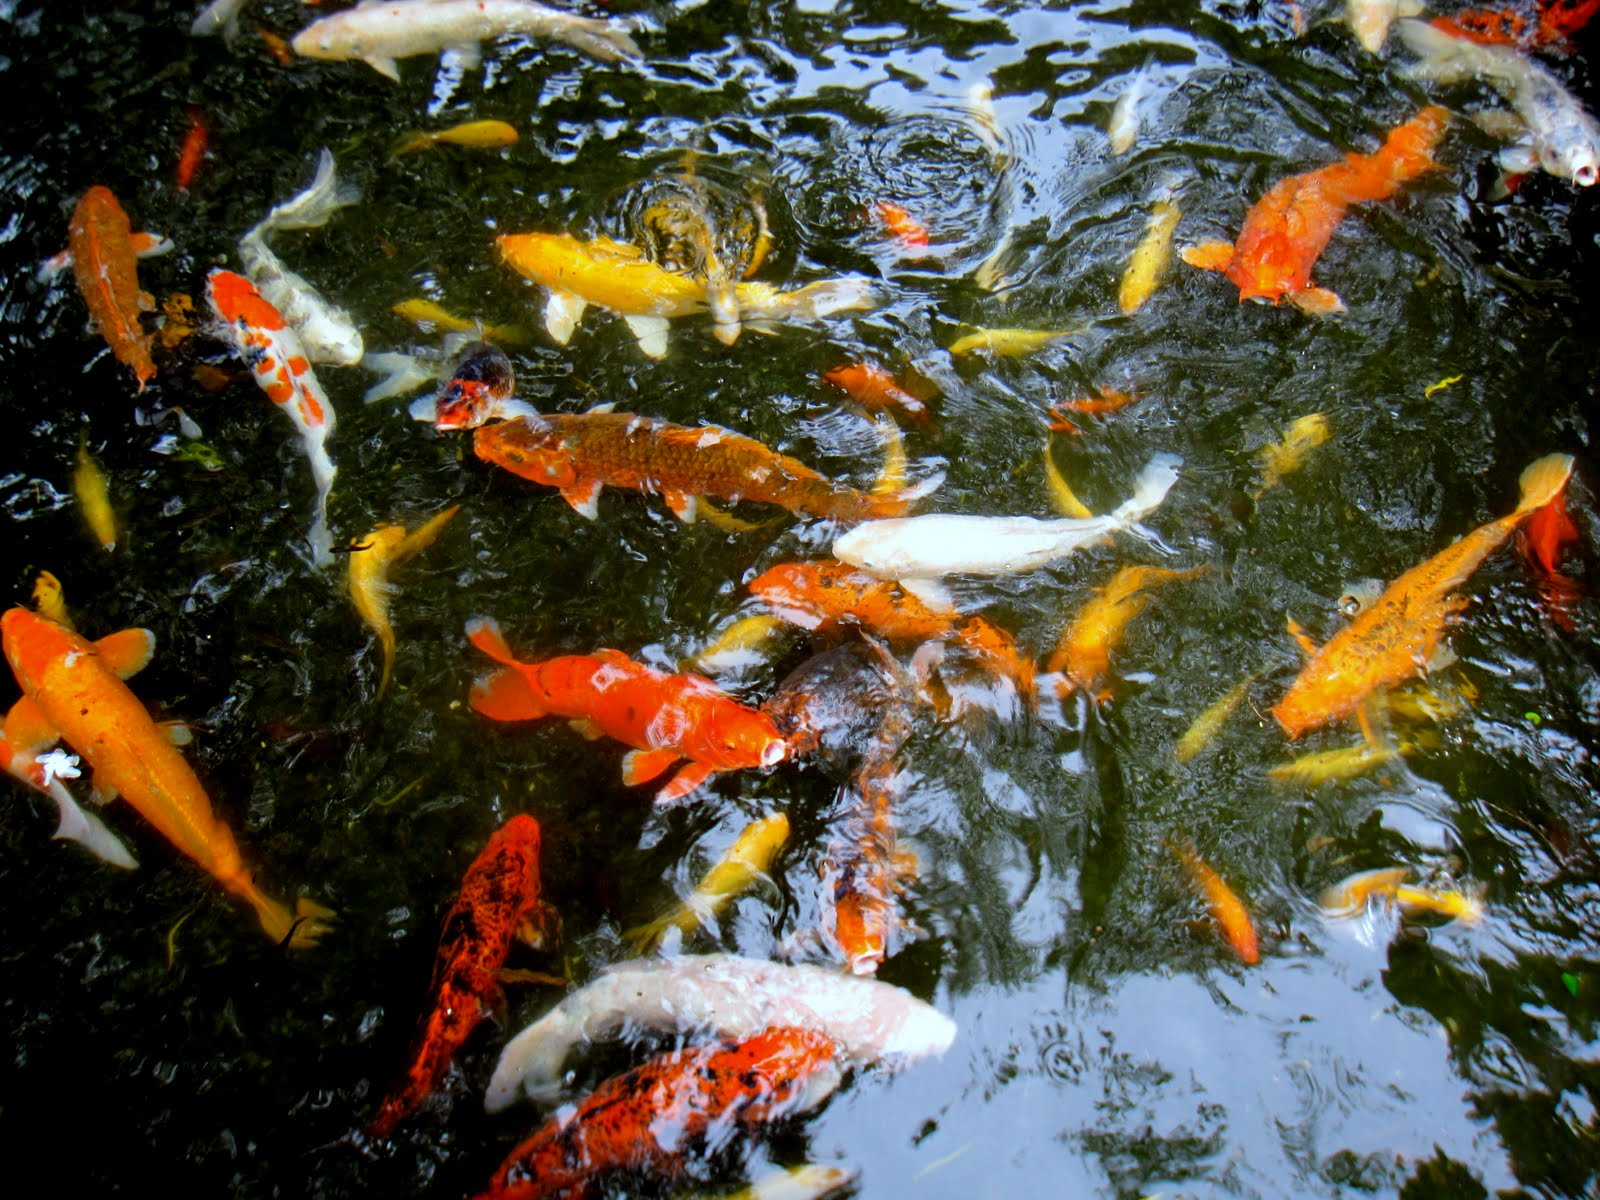 Japanese Koi Fish Swimming Of koi fish swimming inJapanese Koi Fish Swimming